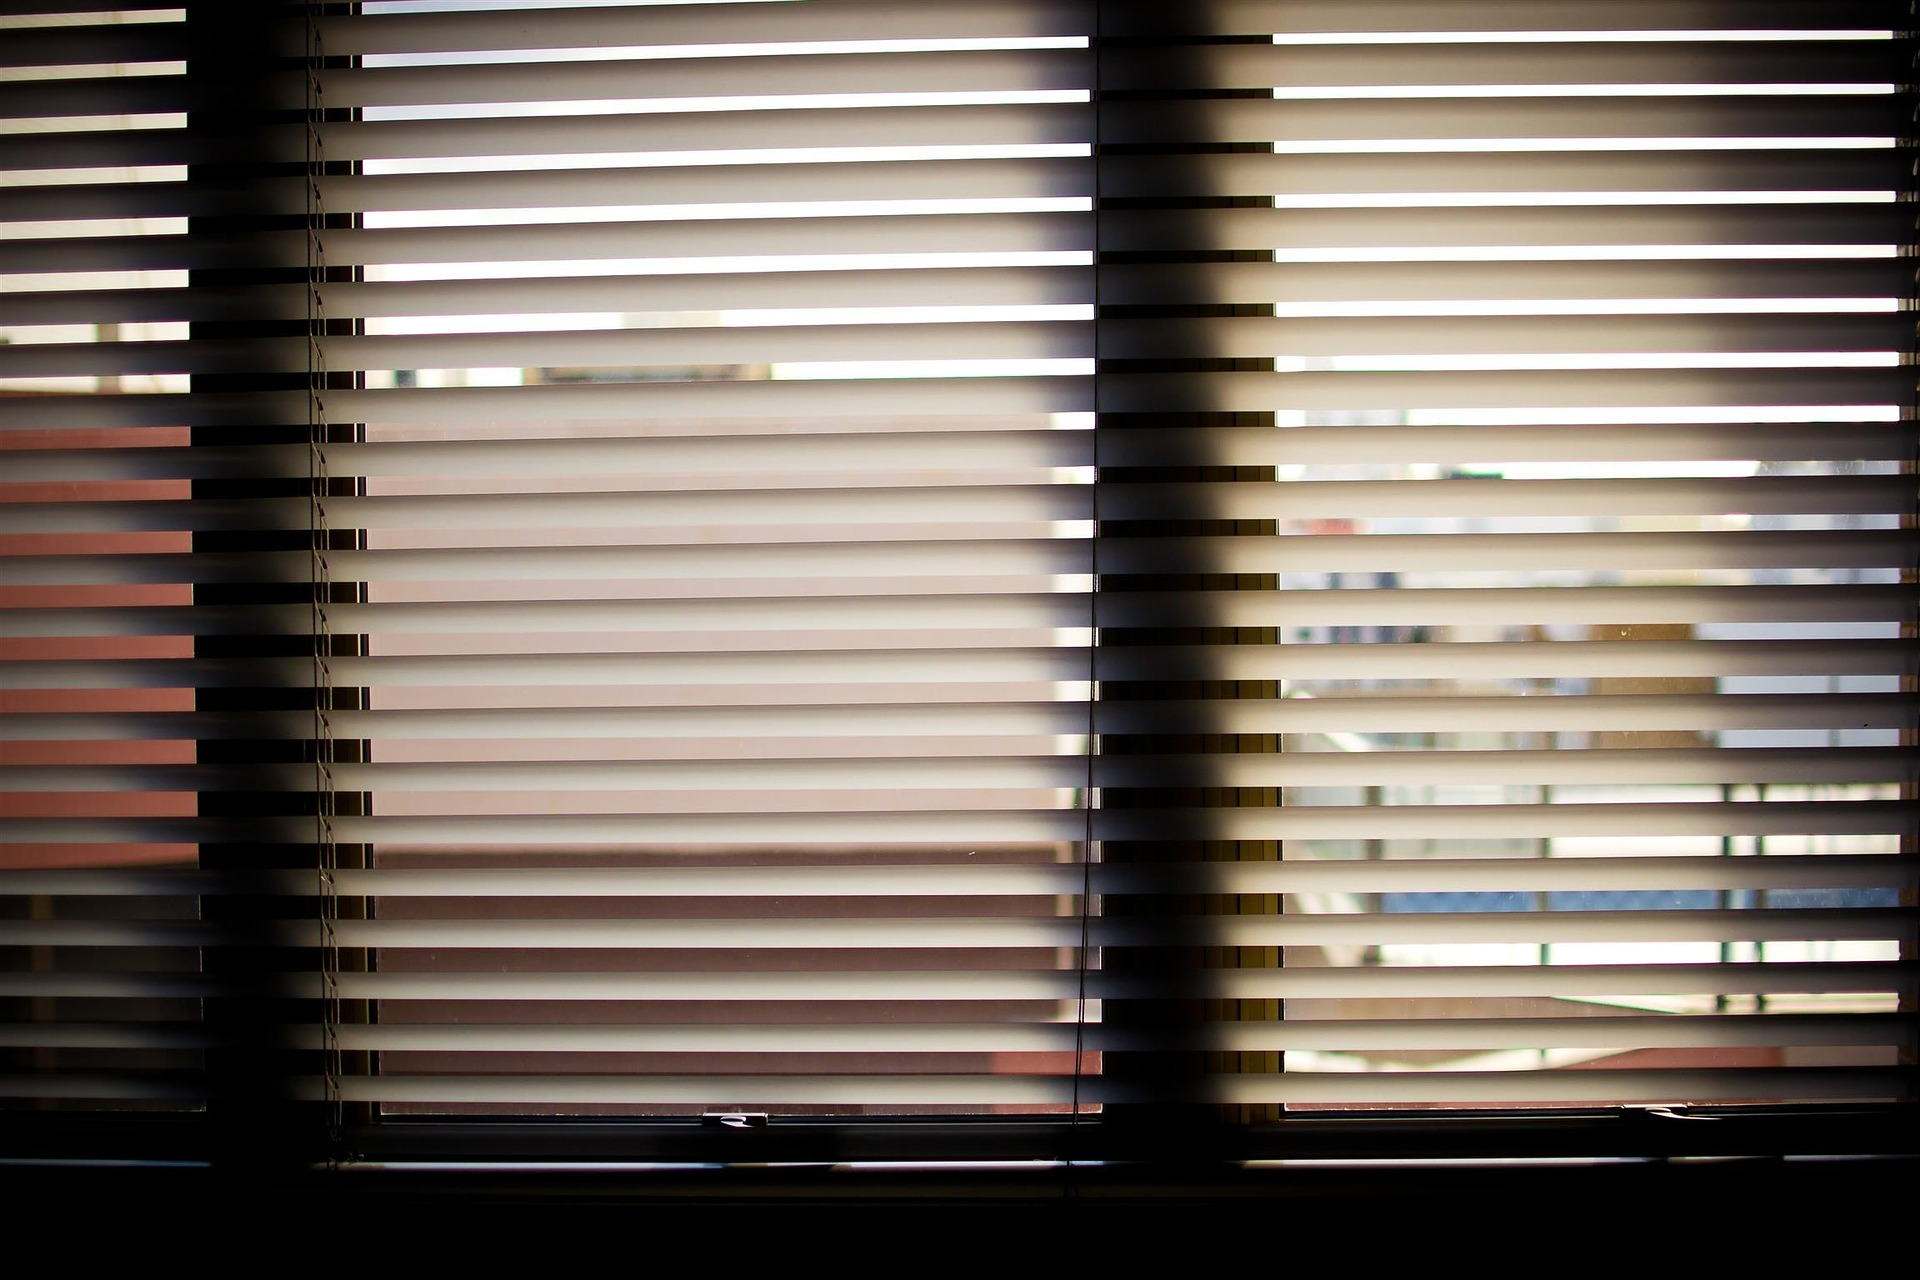 Energy saving tip: Draw the blinds to block out the sunlight on extremely hot summer days.